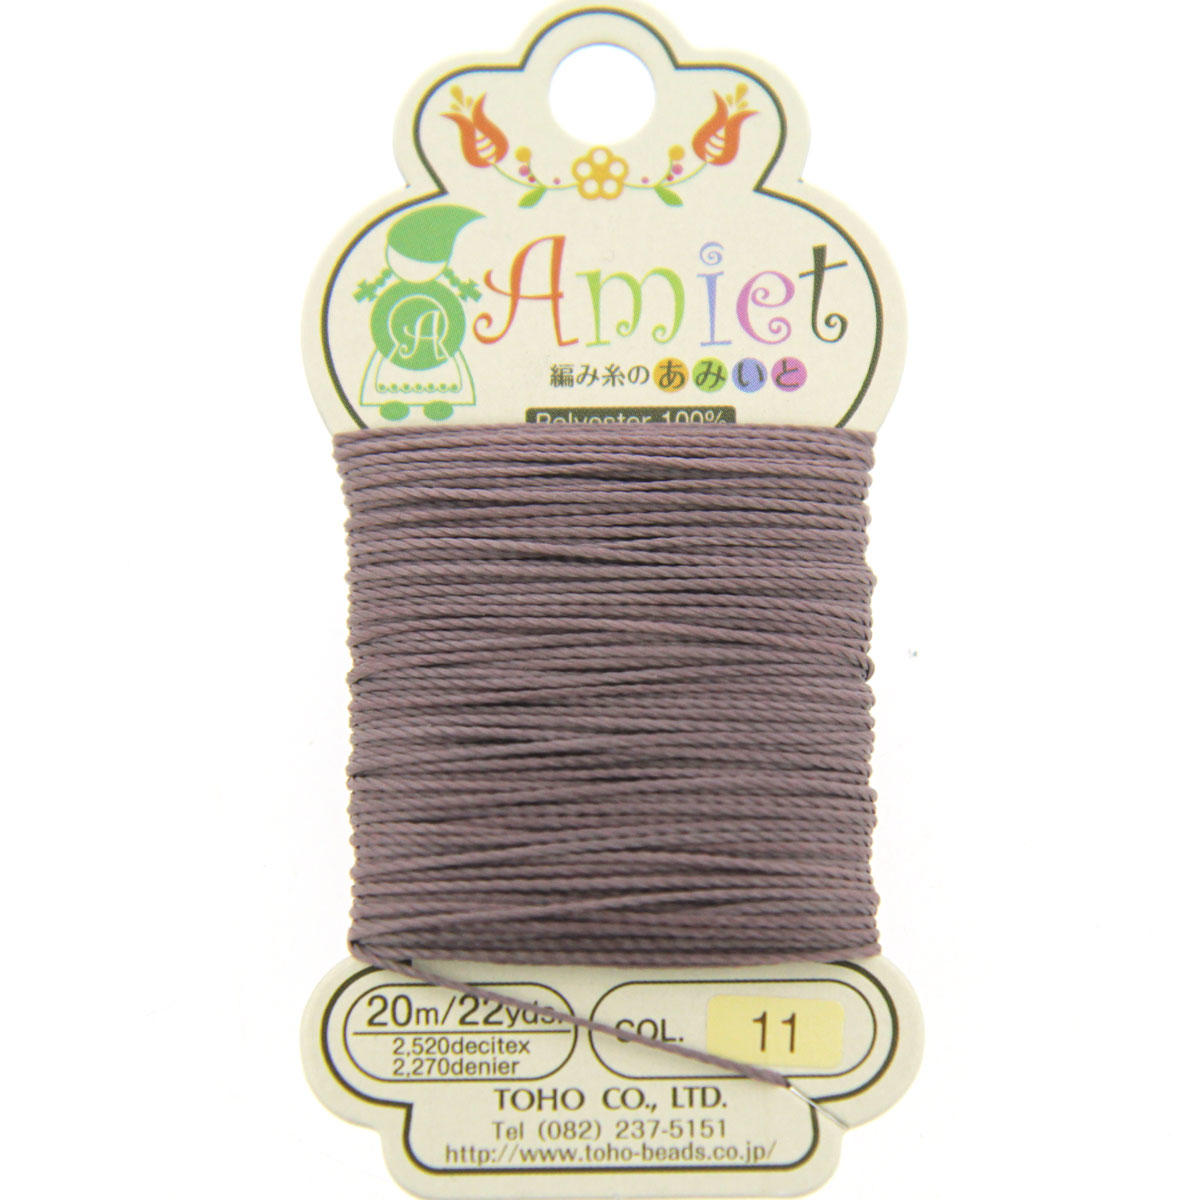 Amiet Dusty Mauve Polyester Bead Cord